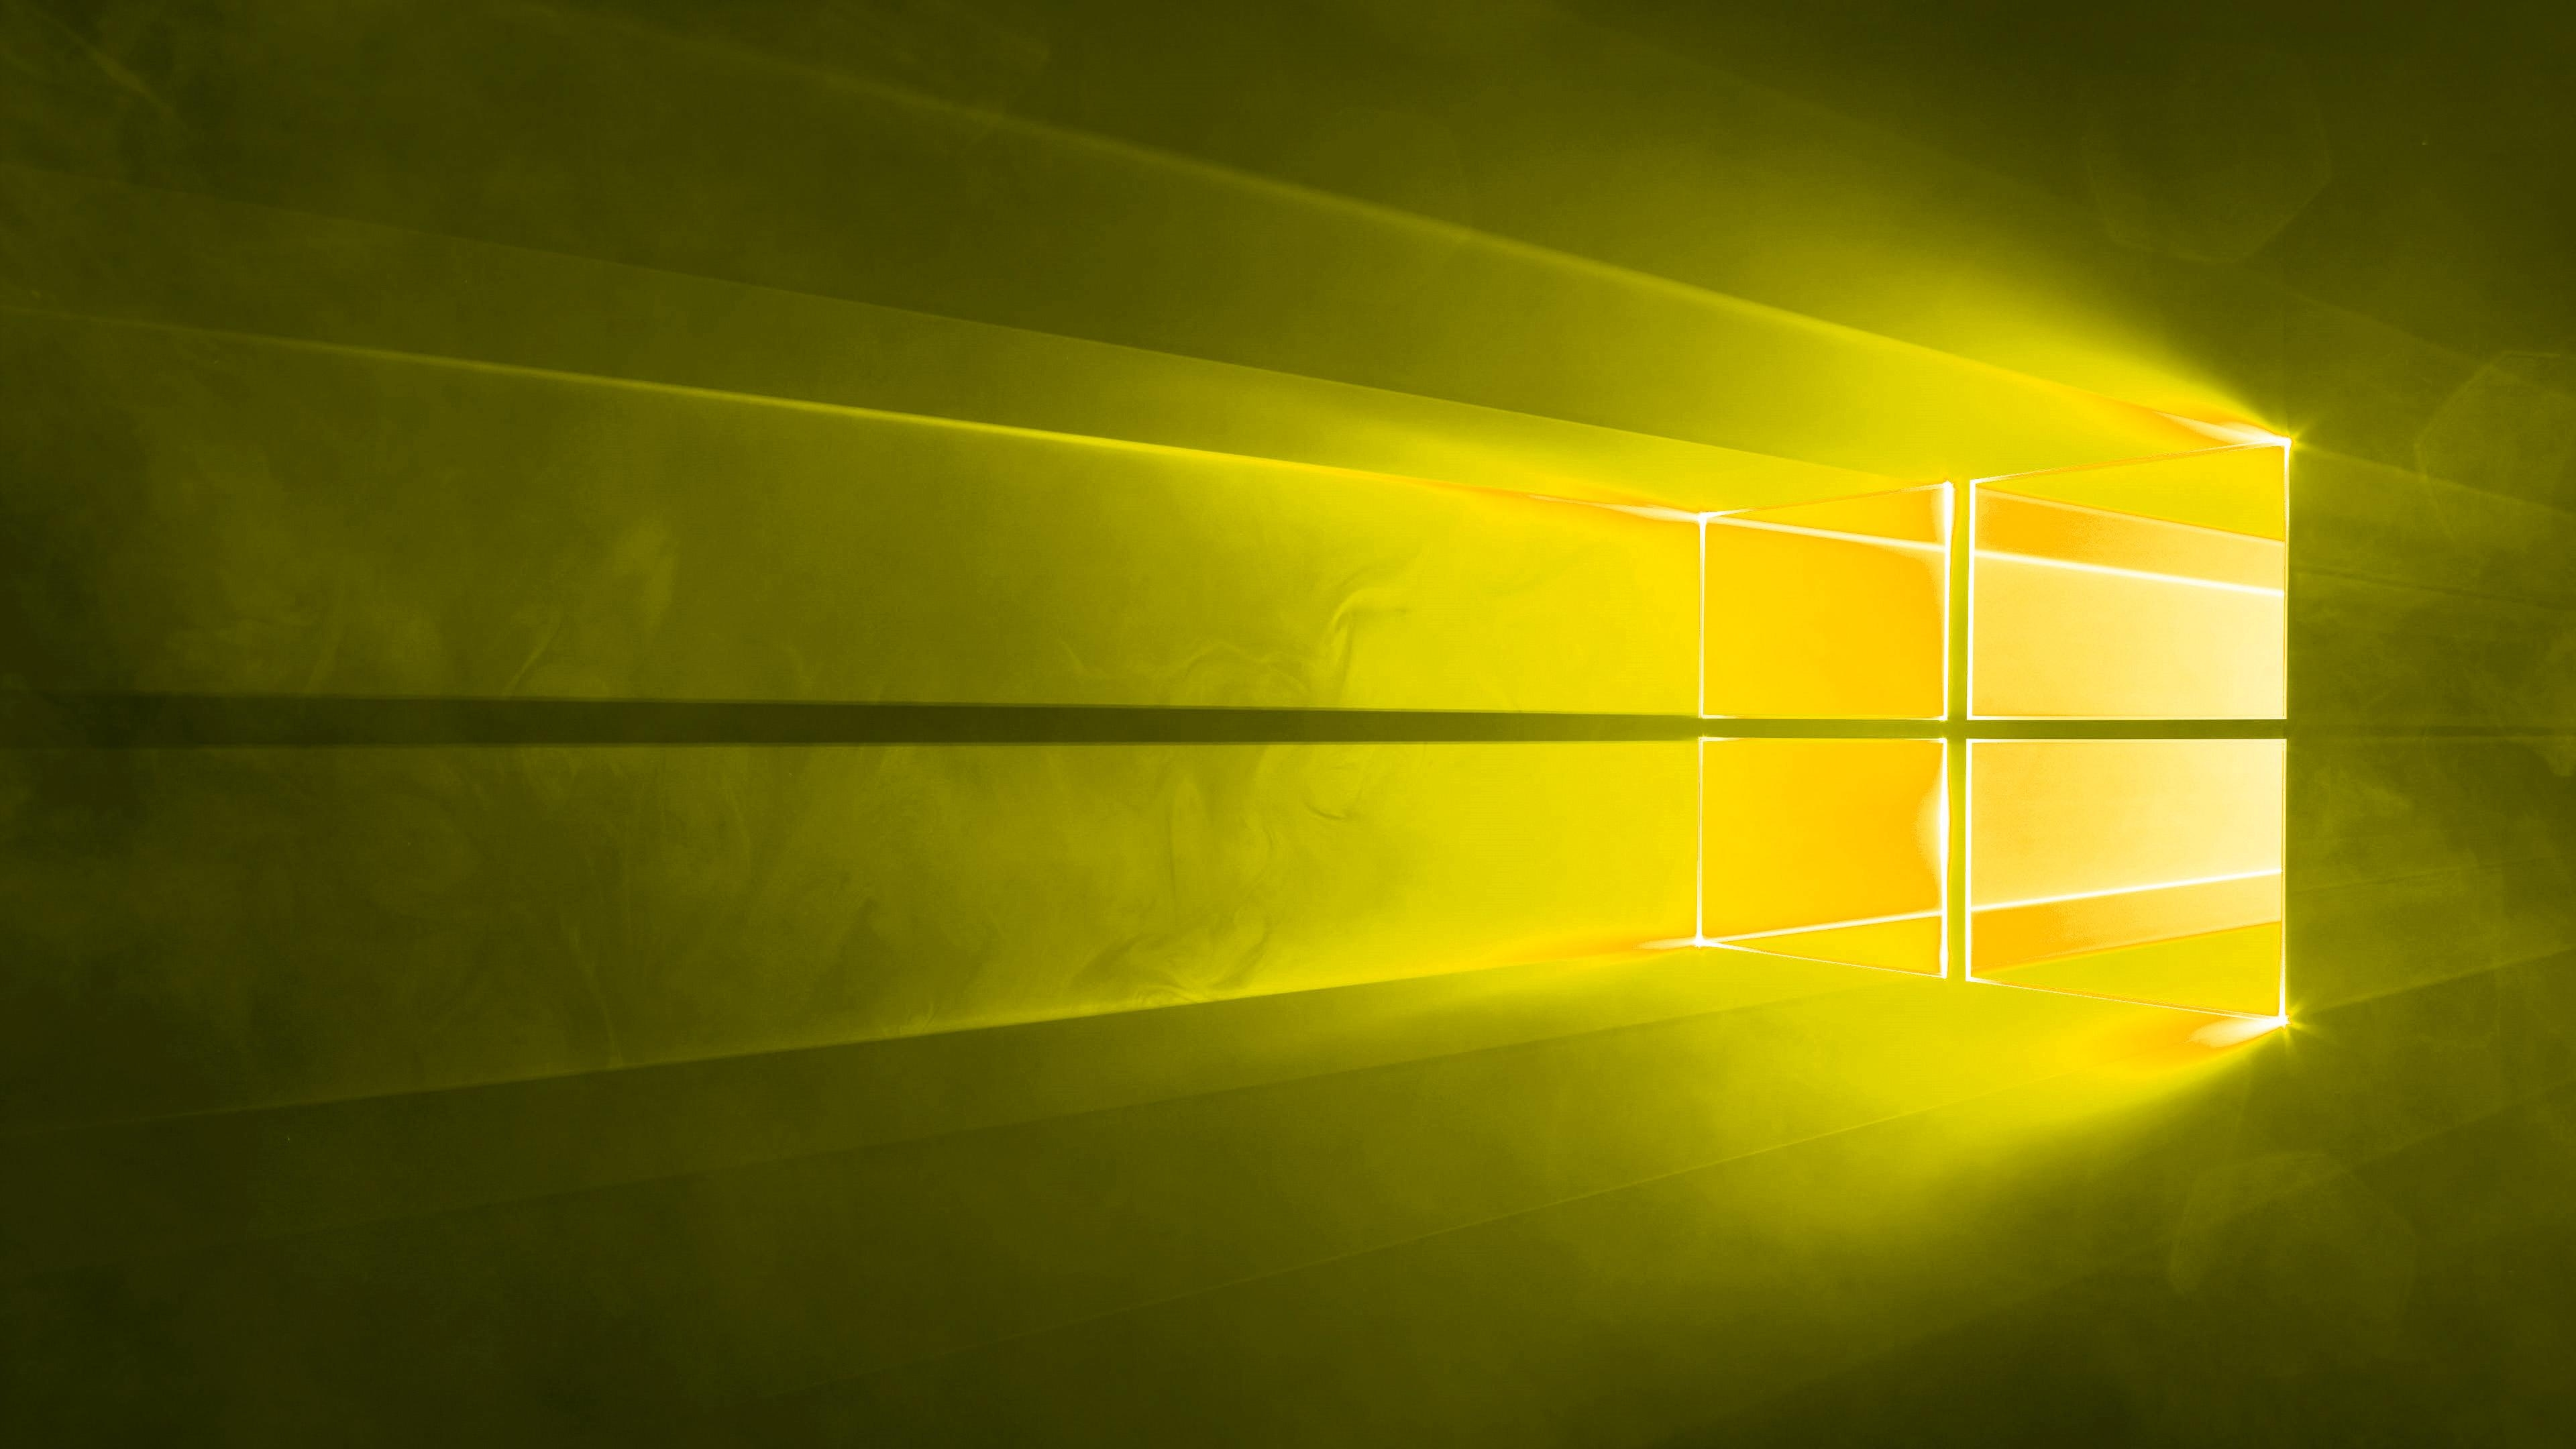 Windows 10 yellow